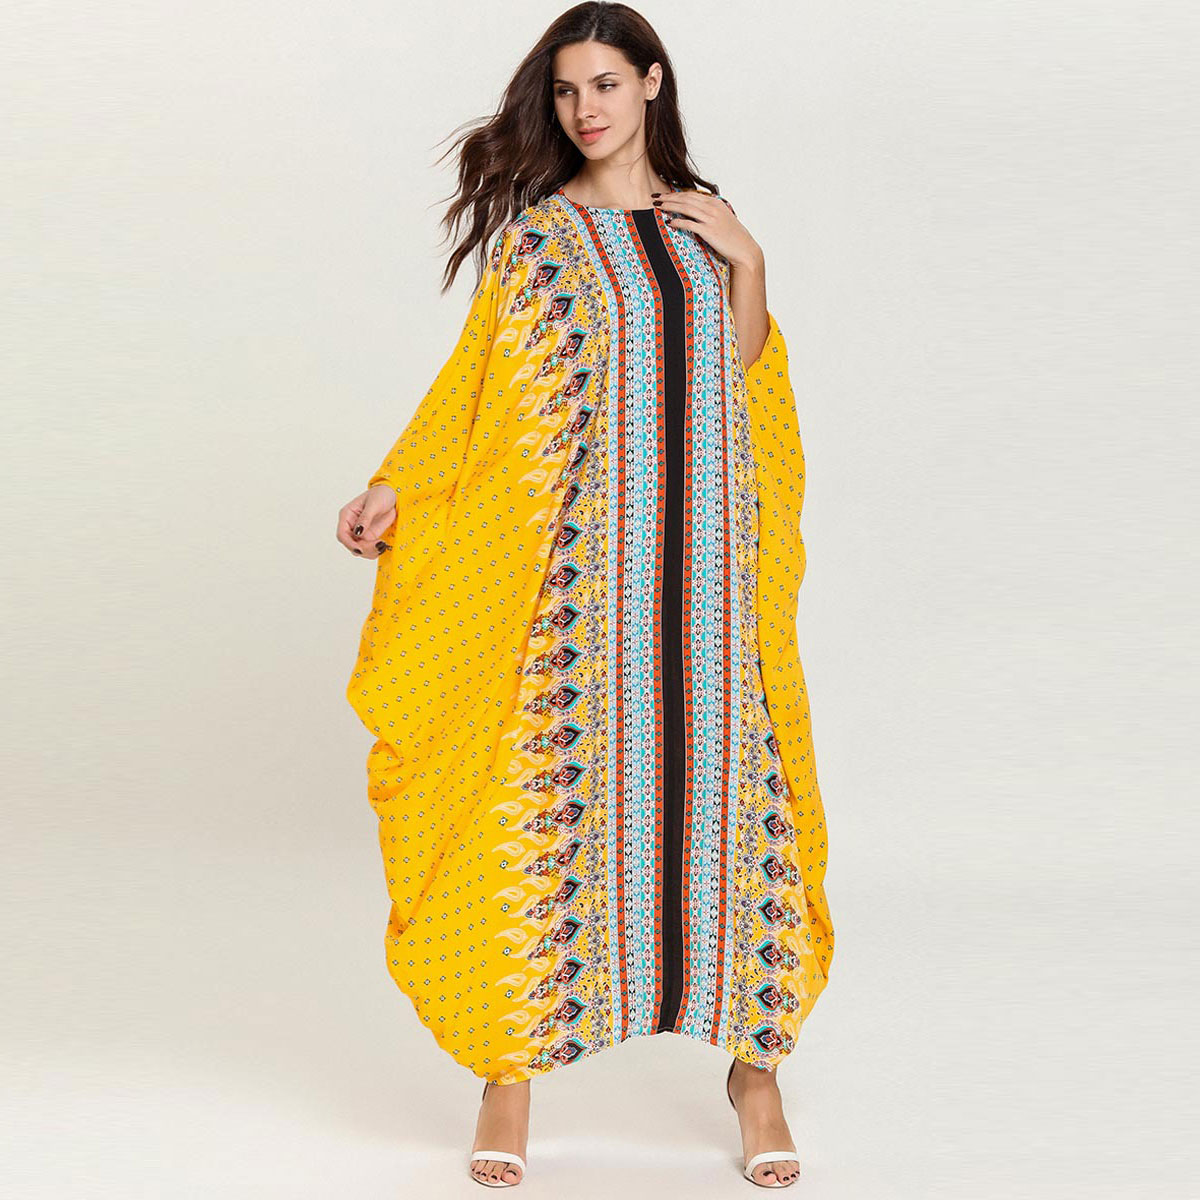 Women Batwing Sleeve Muslim Dress Printed Loose Dubai Abaya Robe Kaftan Moroccan Arabic UAE Islamic Gown VKDR1688